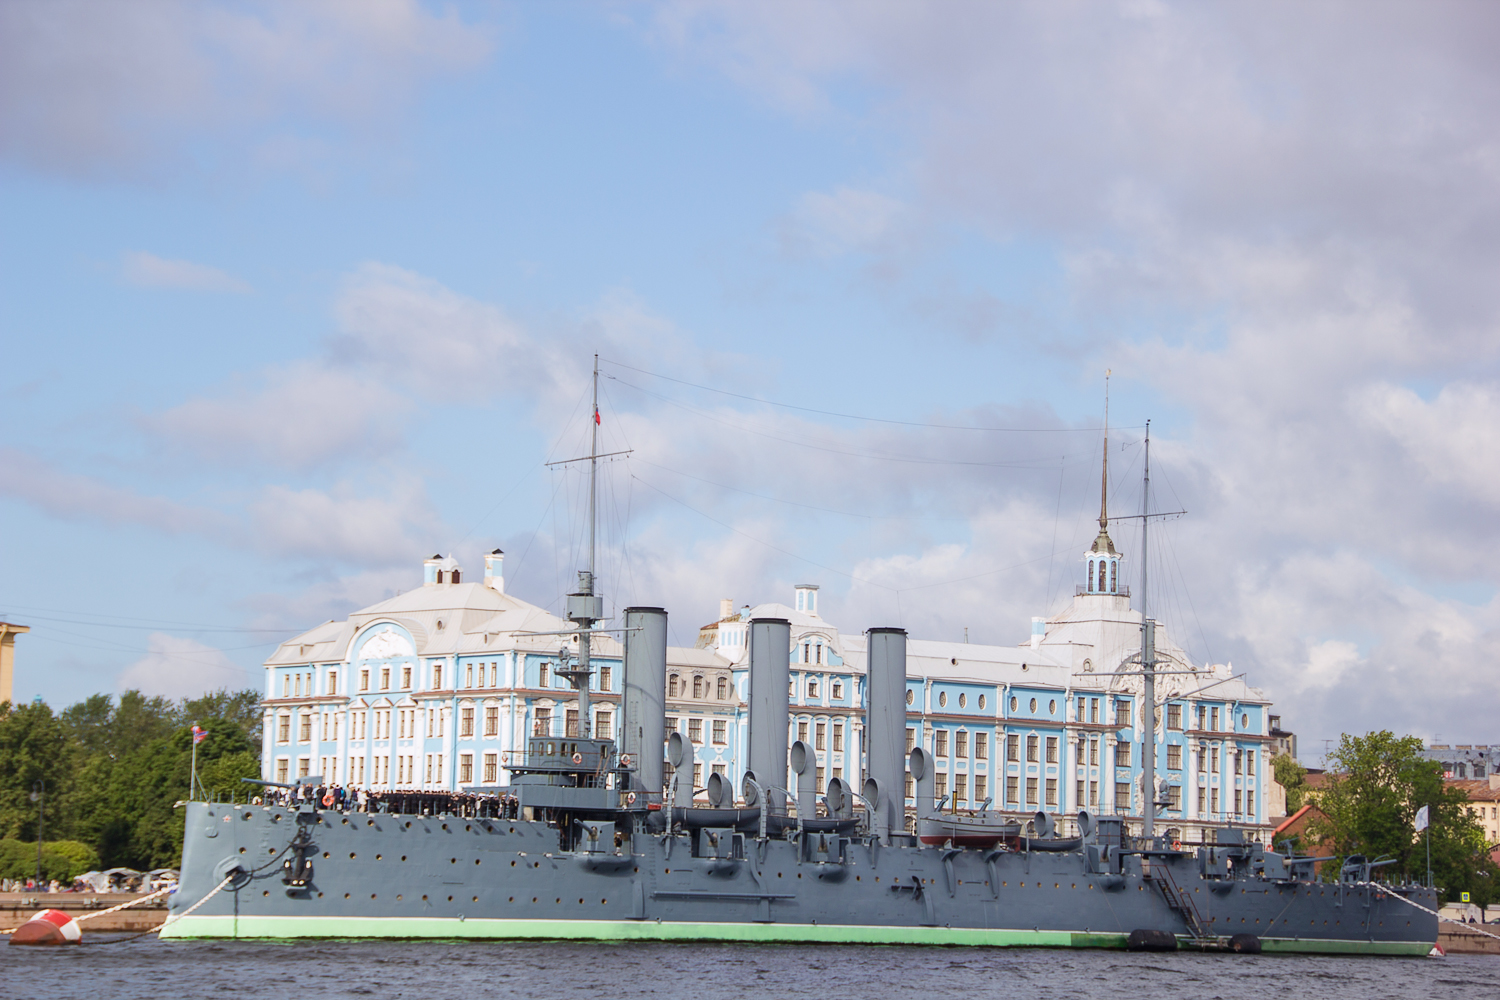 Cruiser Aurora, Artillery, Neva, Warship, Town, HQ Photo